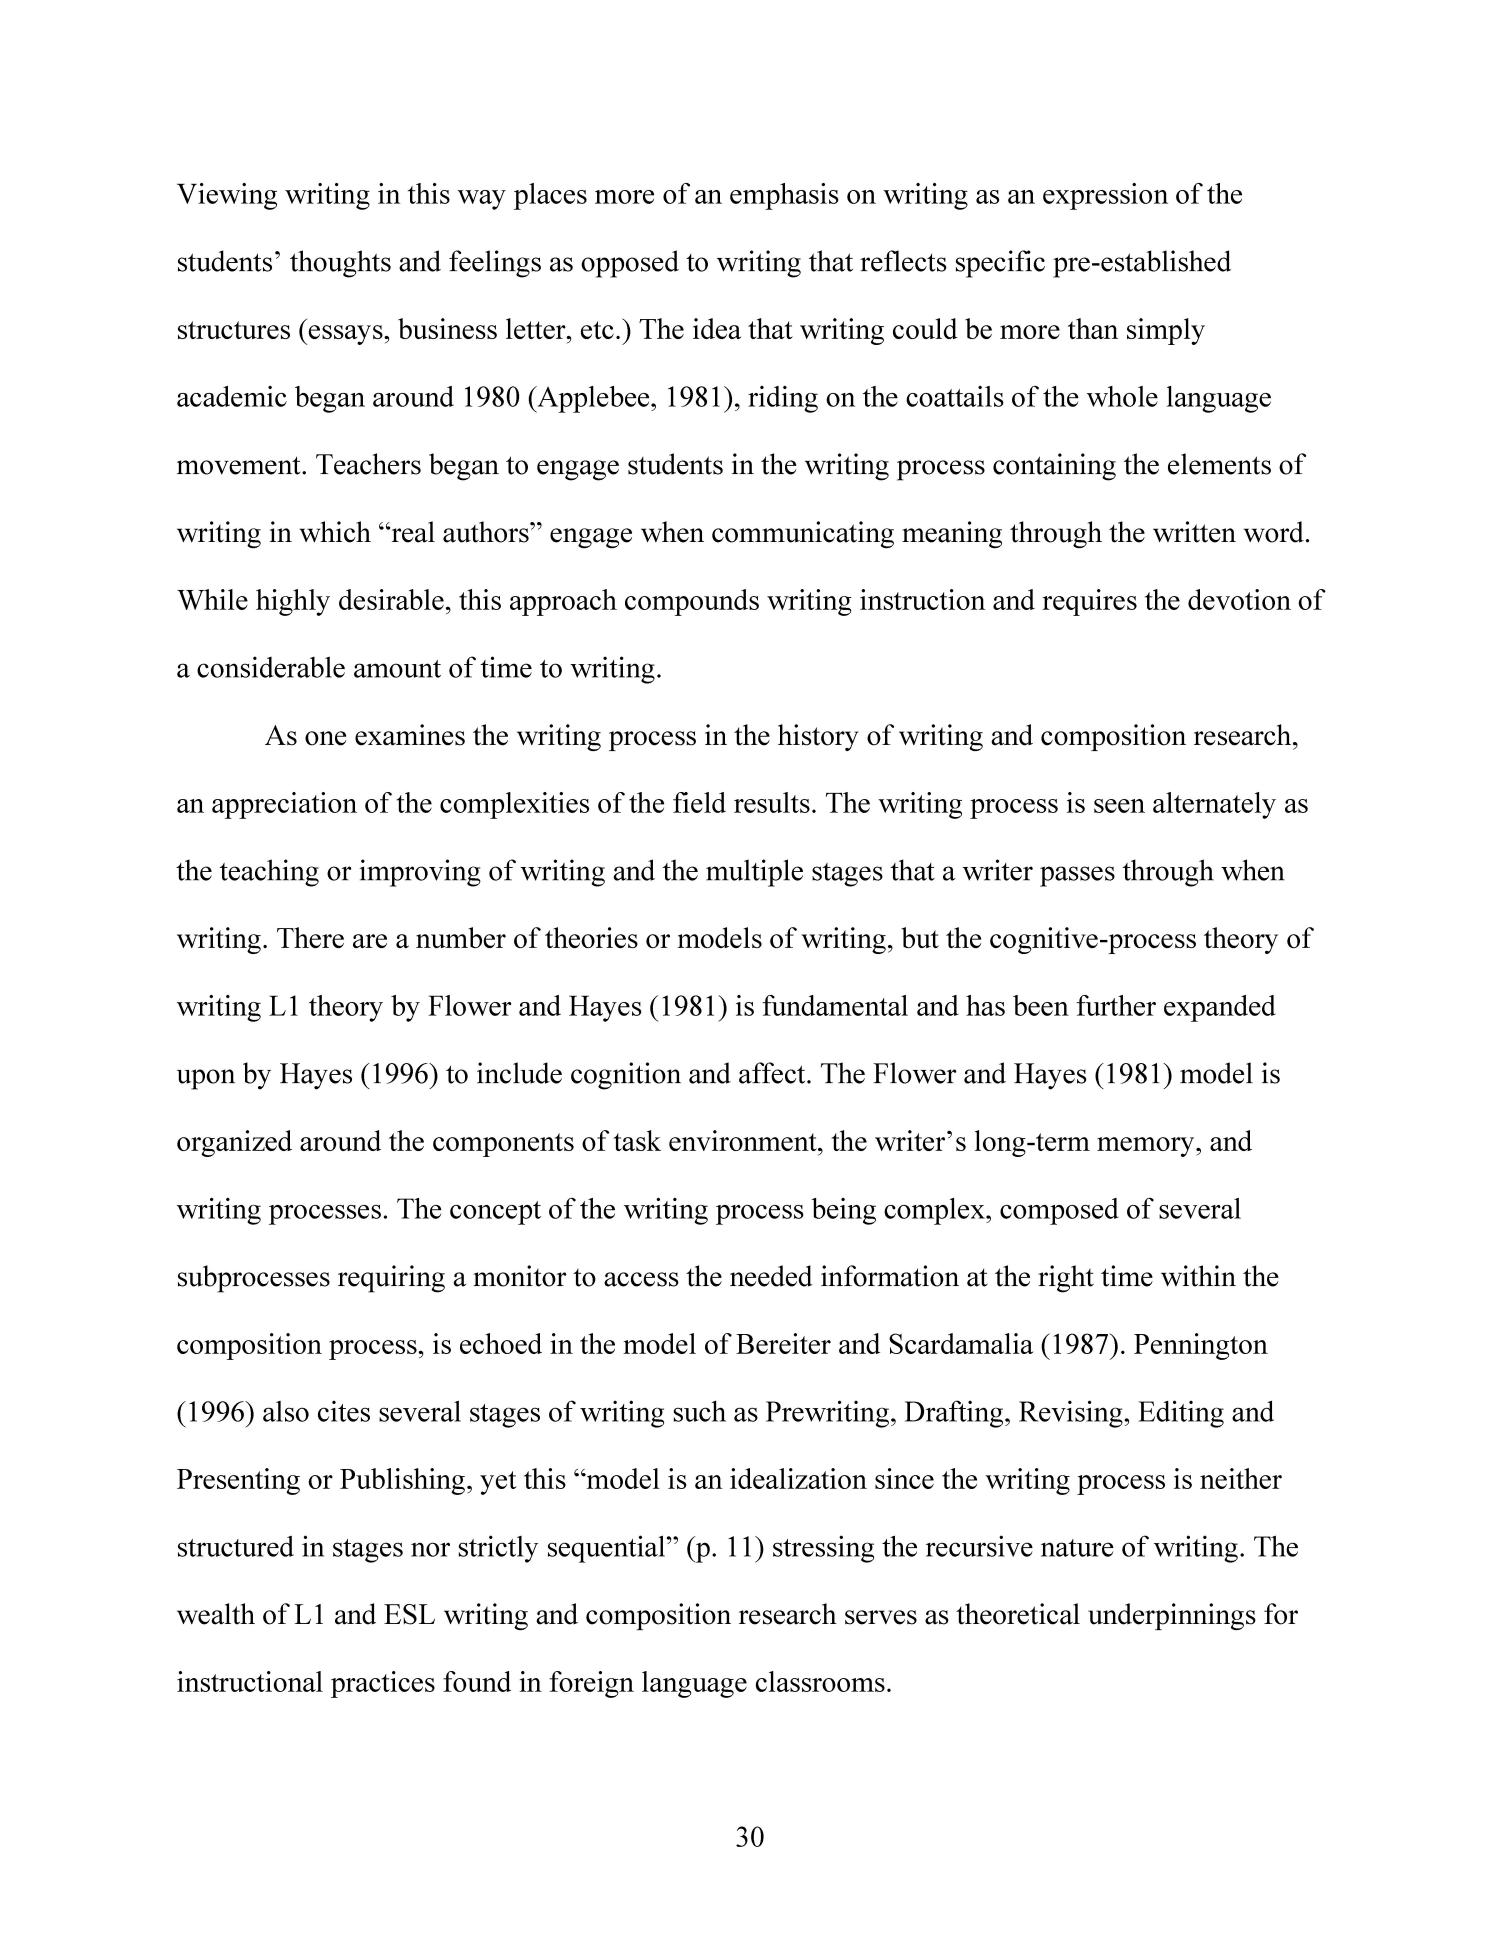 Effects of Technology-Enhanced Language Learning on Second Language Composition of University-Level Intermediate Spanish Students                                                                                                      30